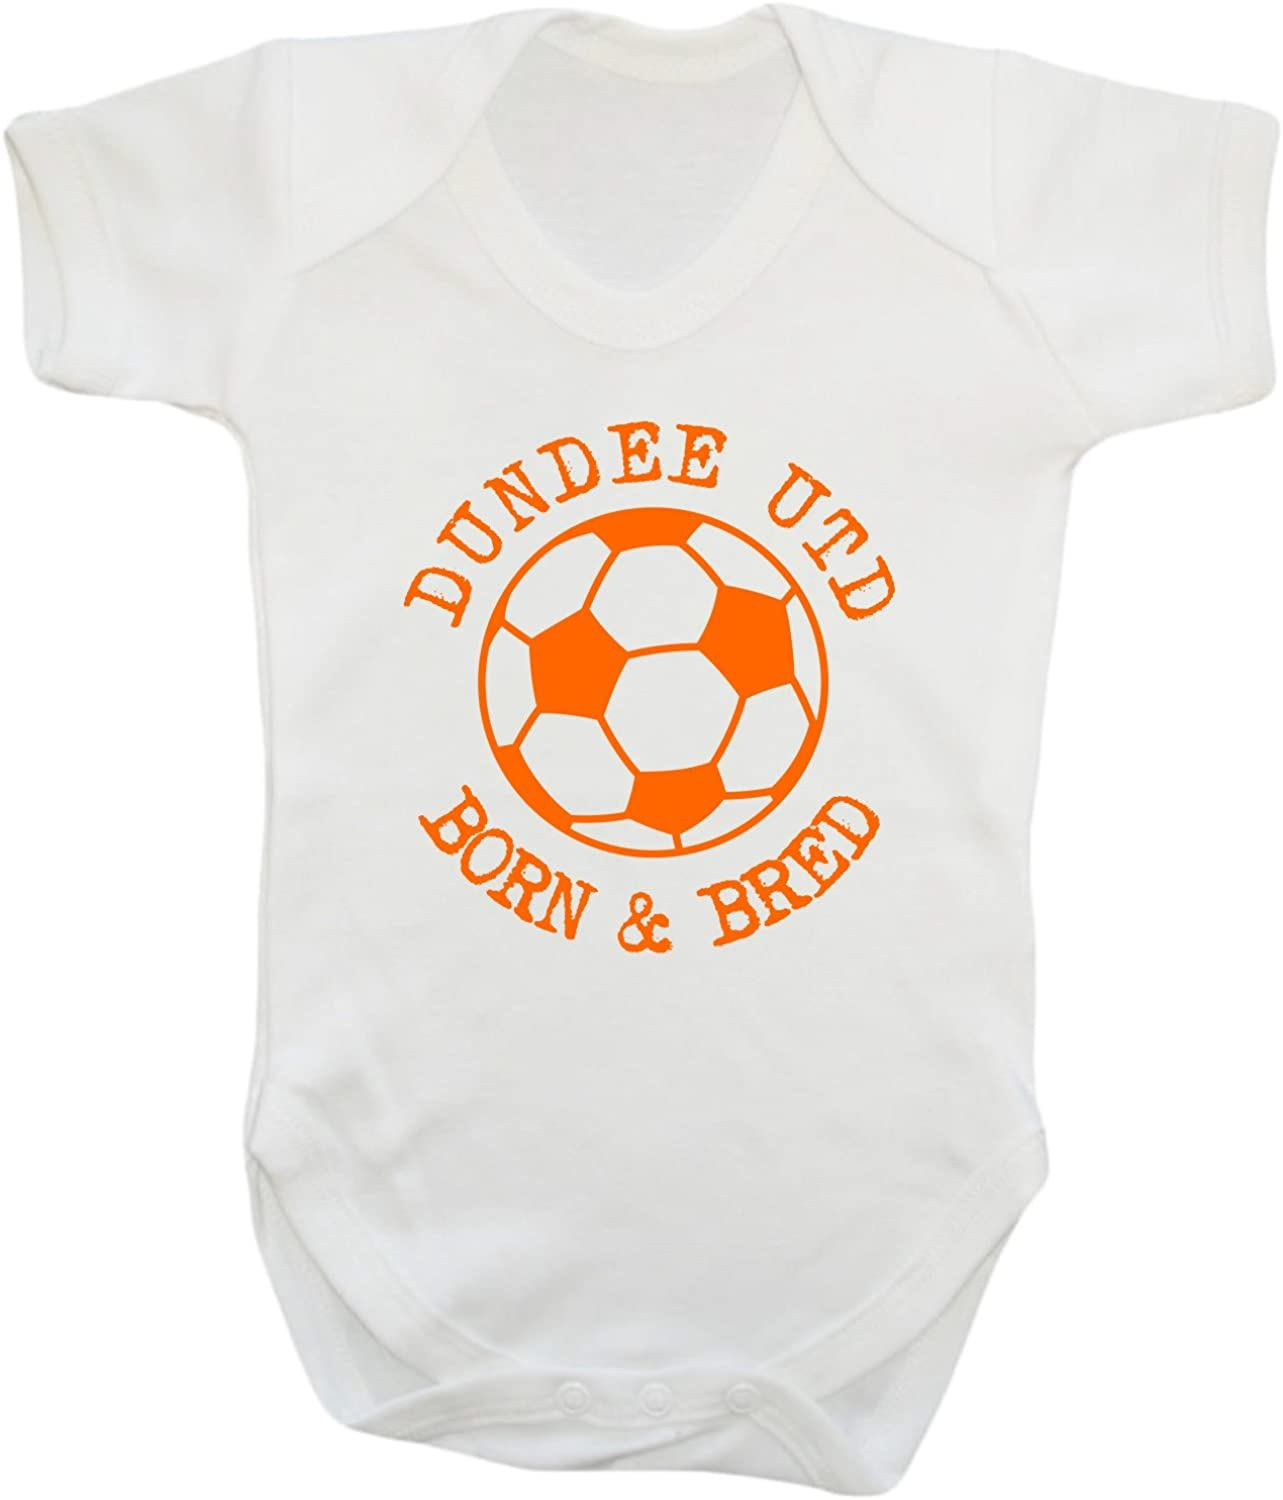 Hat-Trick Designs Dundee United Football Baby Childrens T-Shirt Top-Orange-Born /& Bred-Unisex Gift